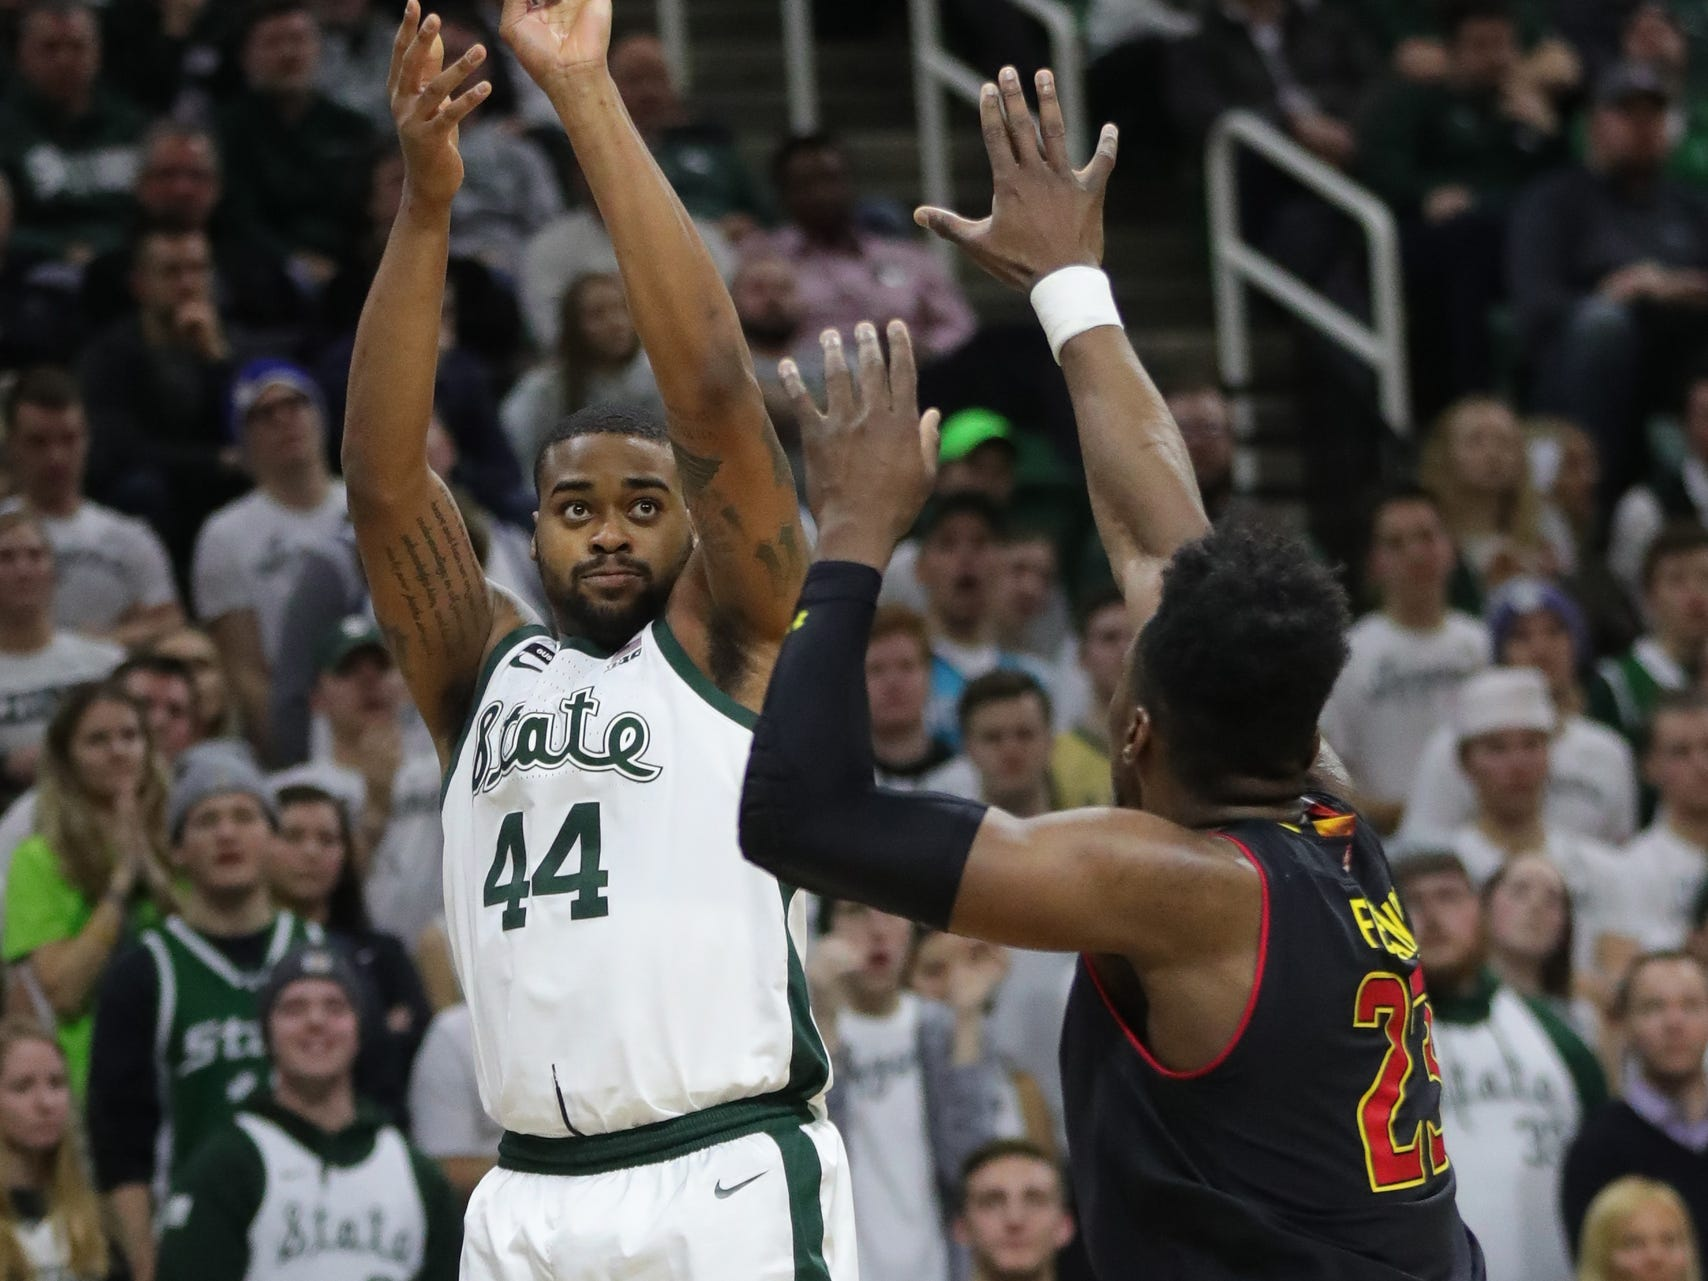 Michigan State forward Nick Ward shoots against Maryland forward Bruno Fernando during second-half action Monday, January 21, 2019 at the Breslin Center in East Lansing, Mich.